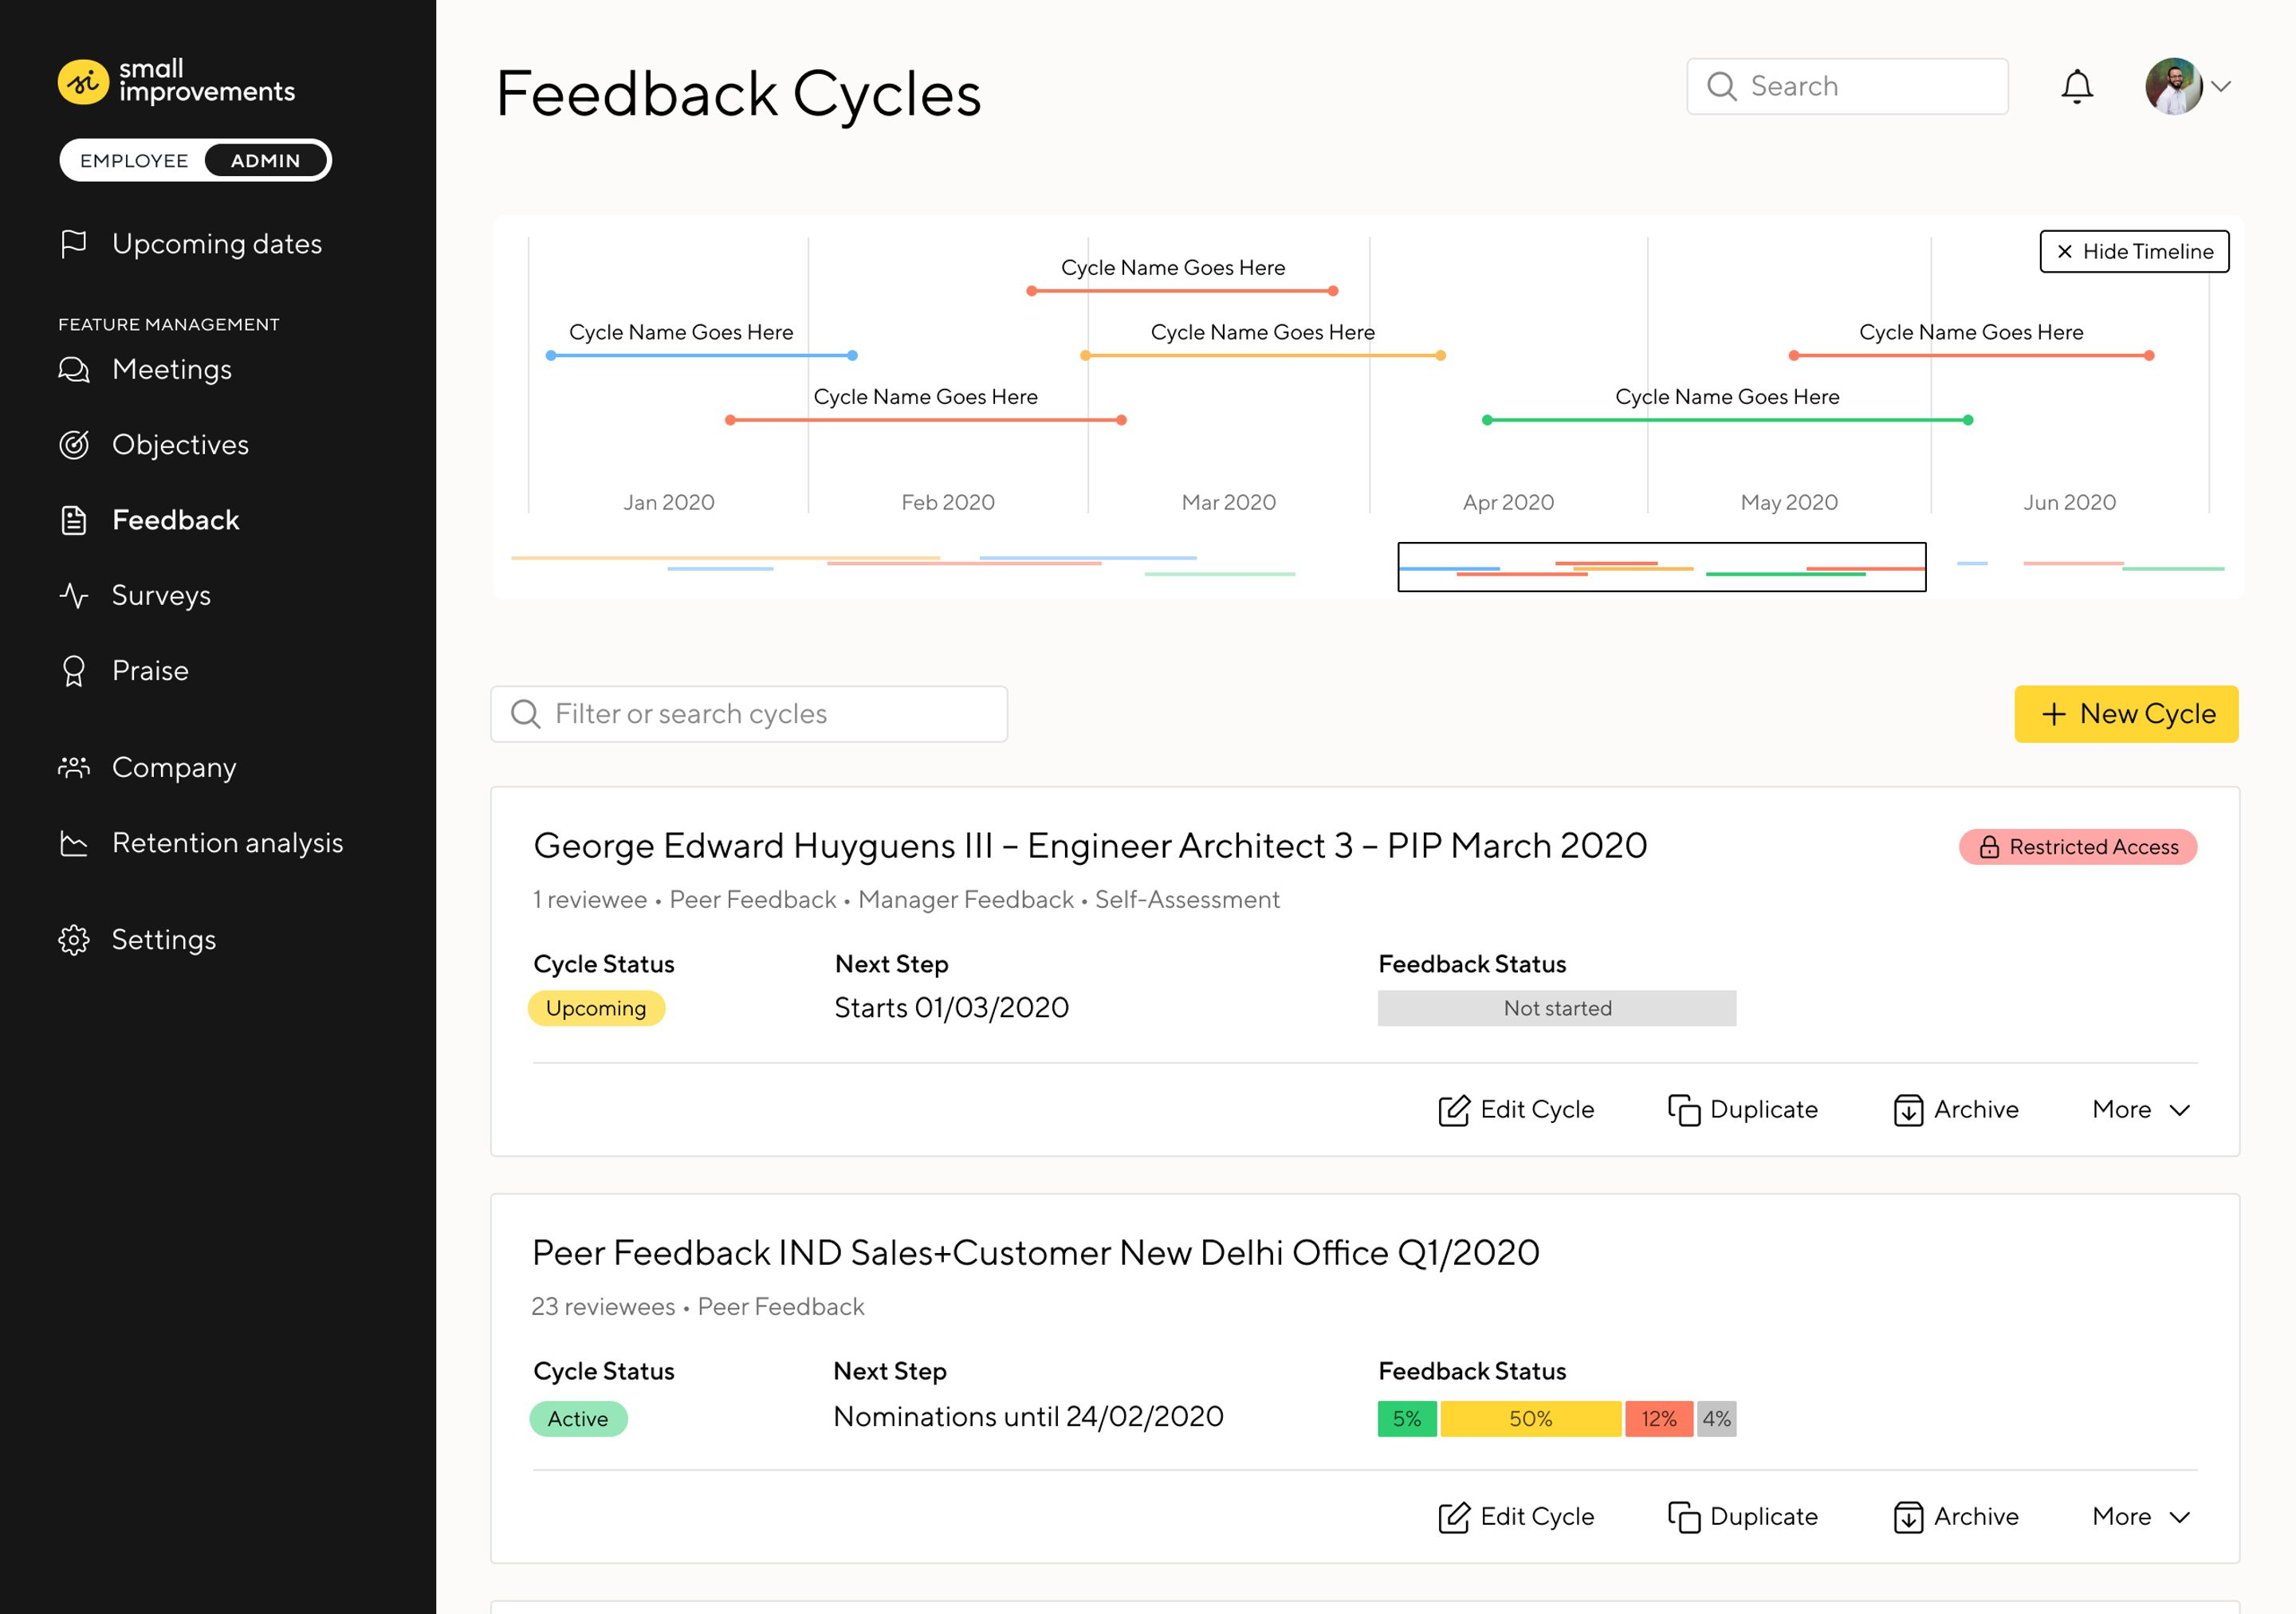 Feedback Cycles